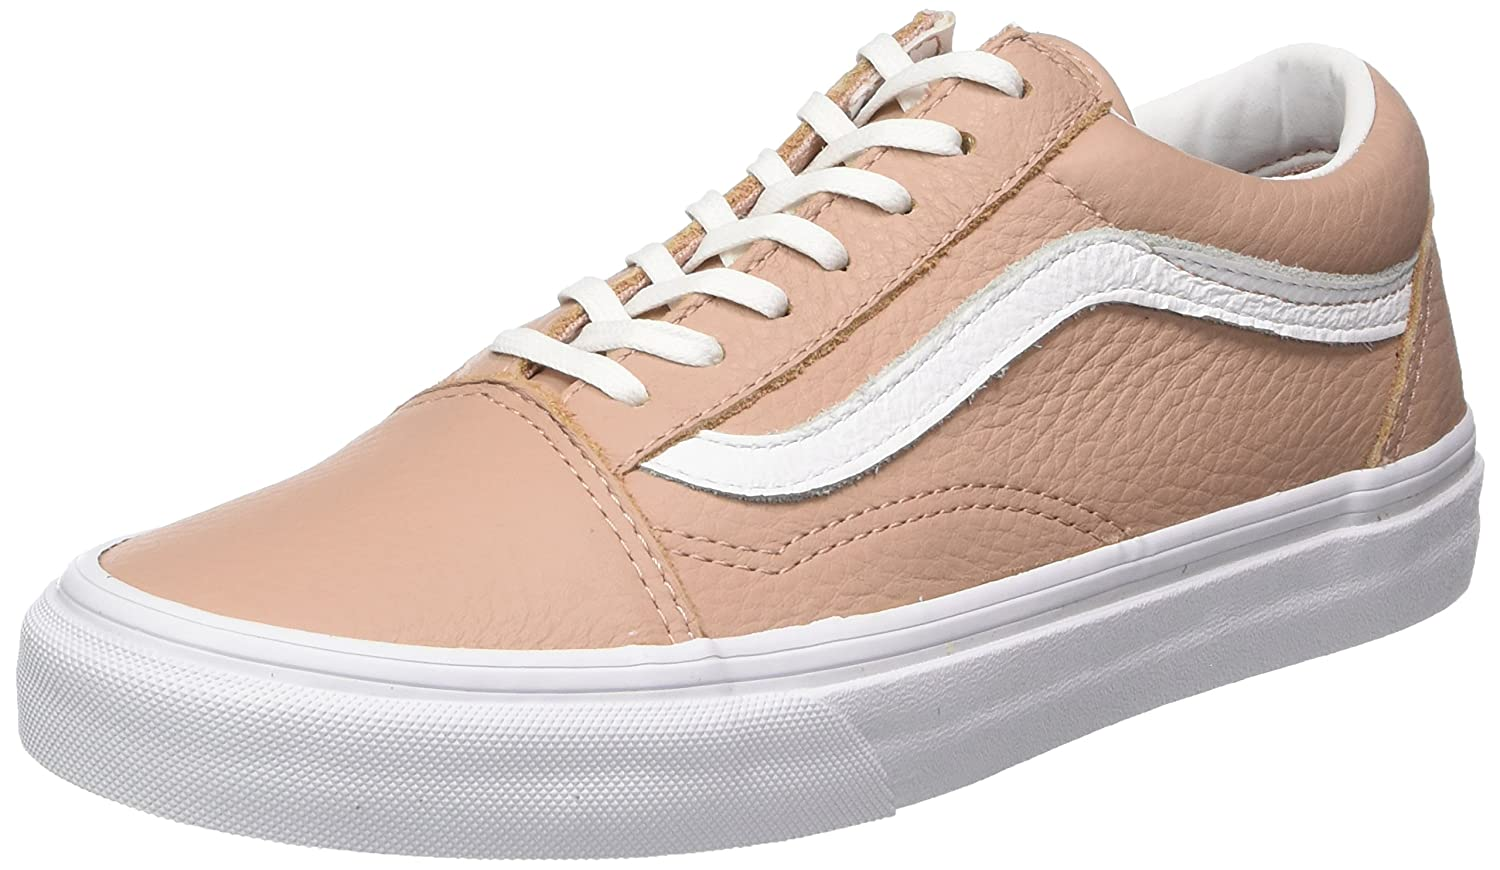 Leather Donna Old Vans Skool Sneaker qg4FxwEFI 42285d6809a